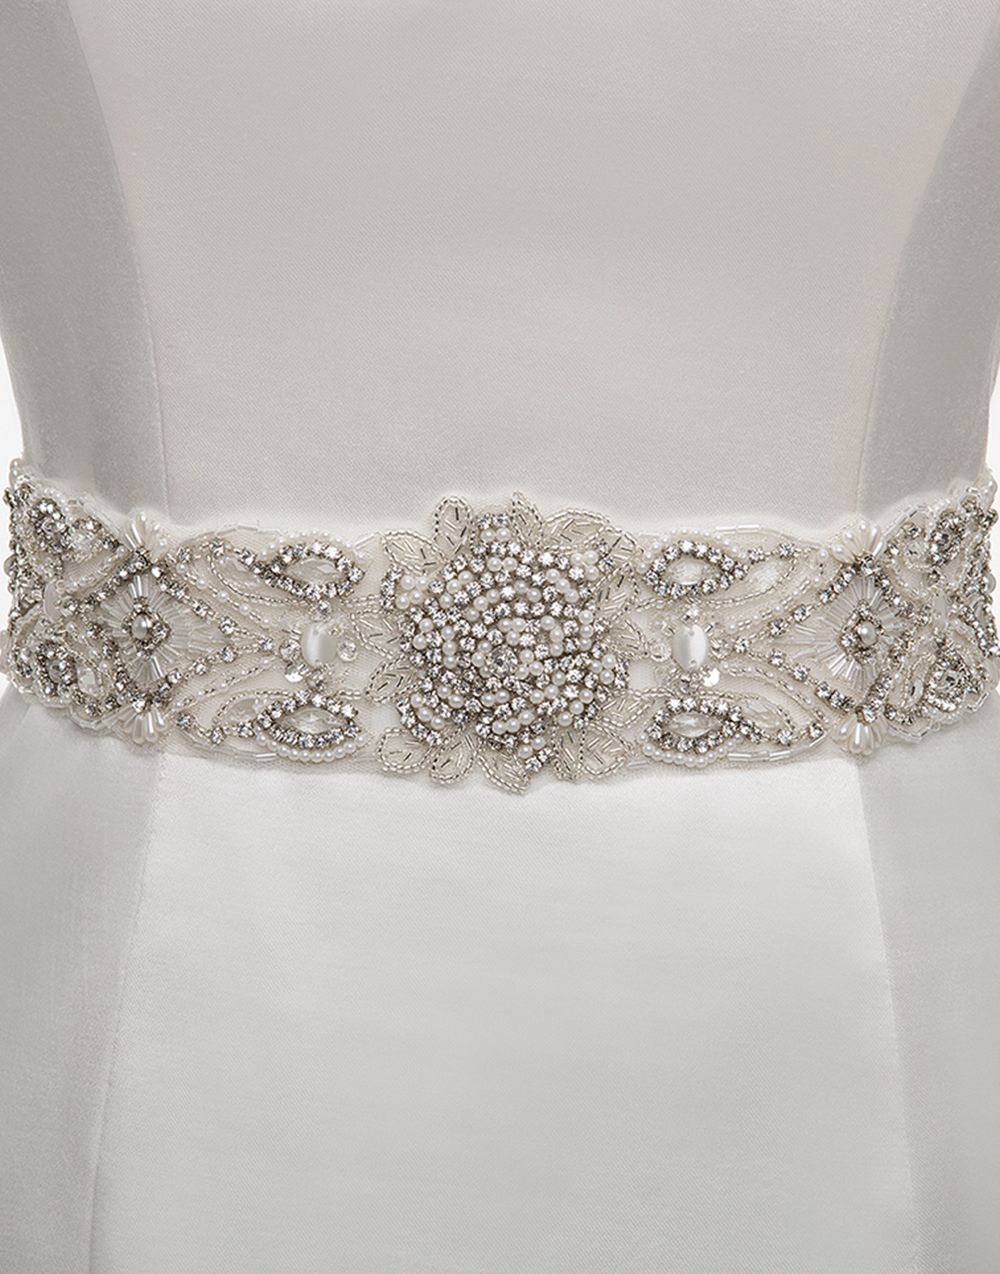 Sincerity wedding accessories style a095 yes i do for Wedding dress accessories belt